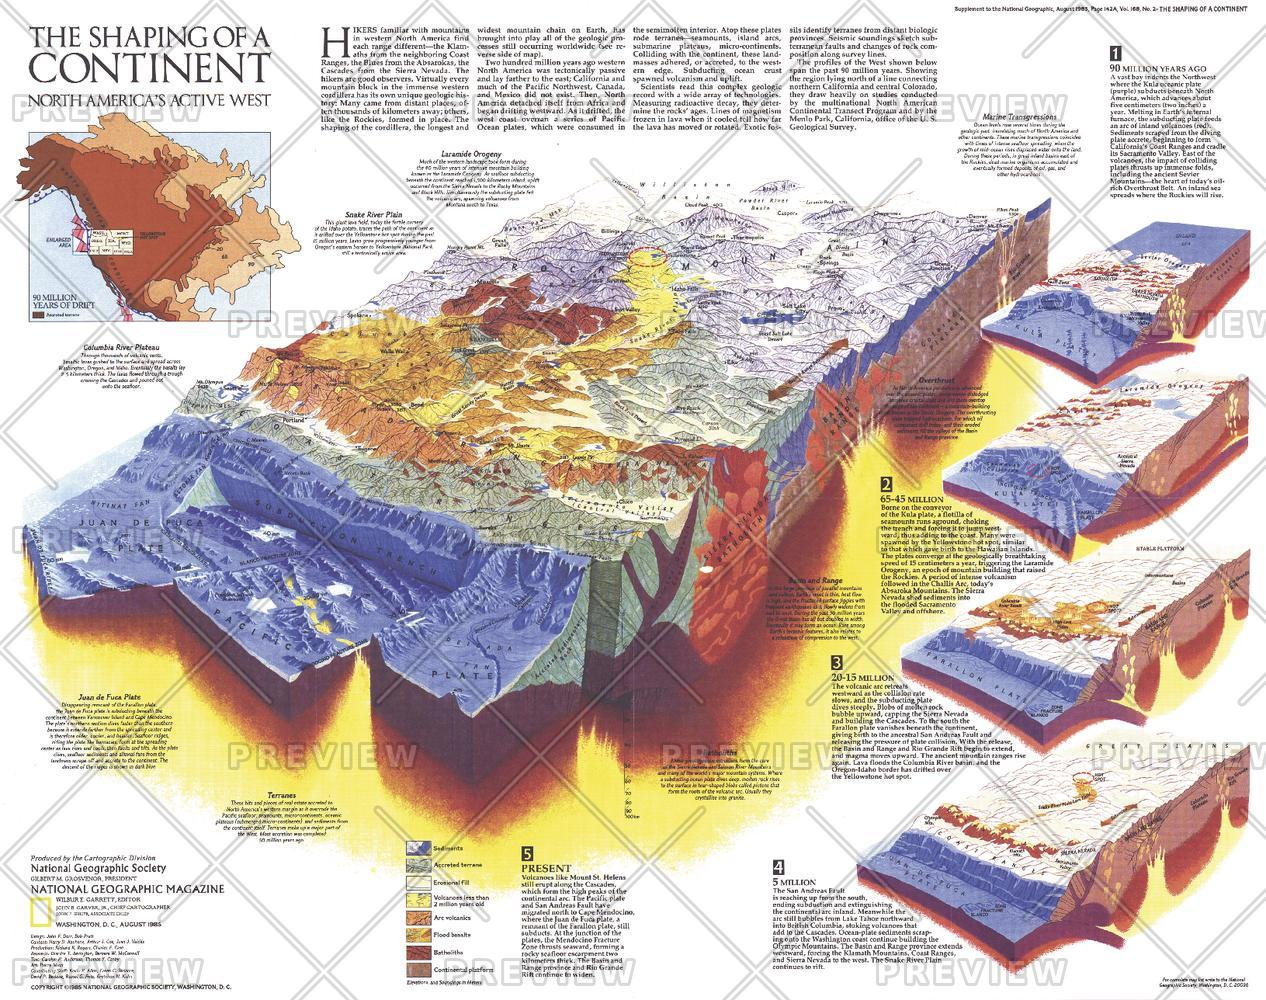 The Shaping of a Continent - Published 1985